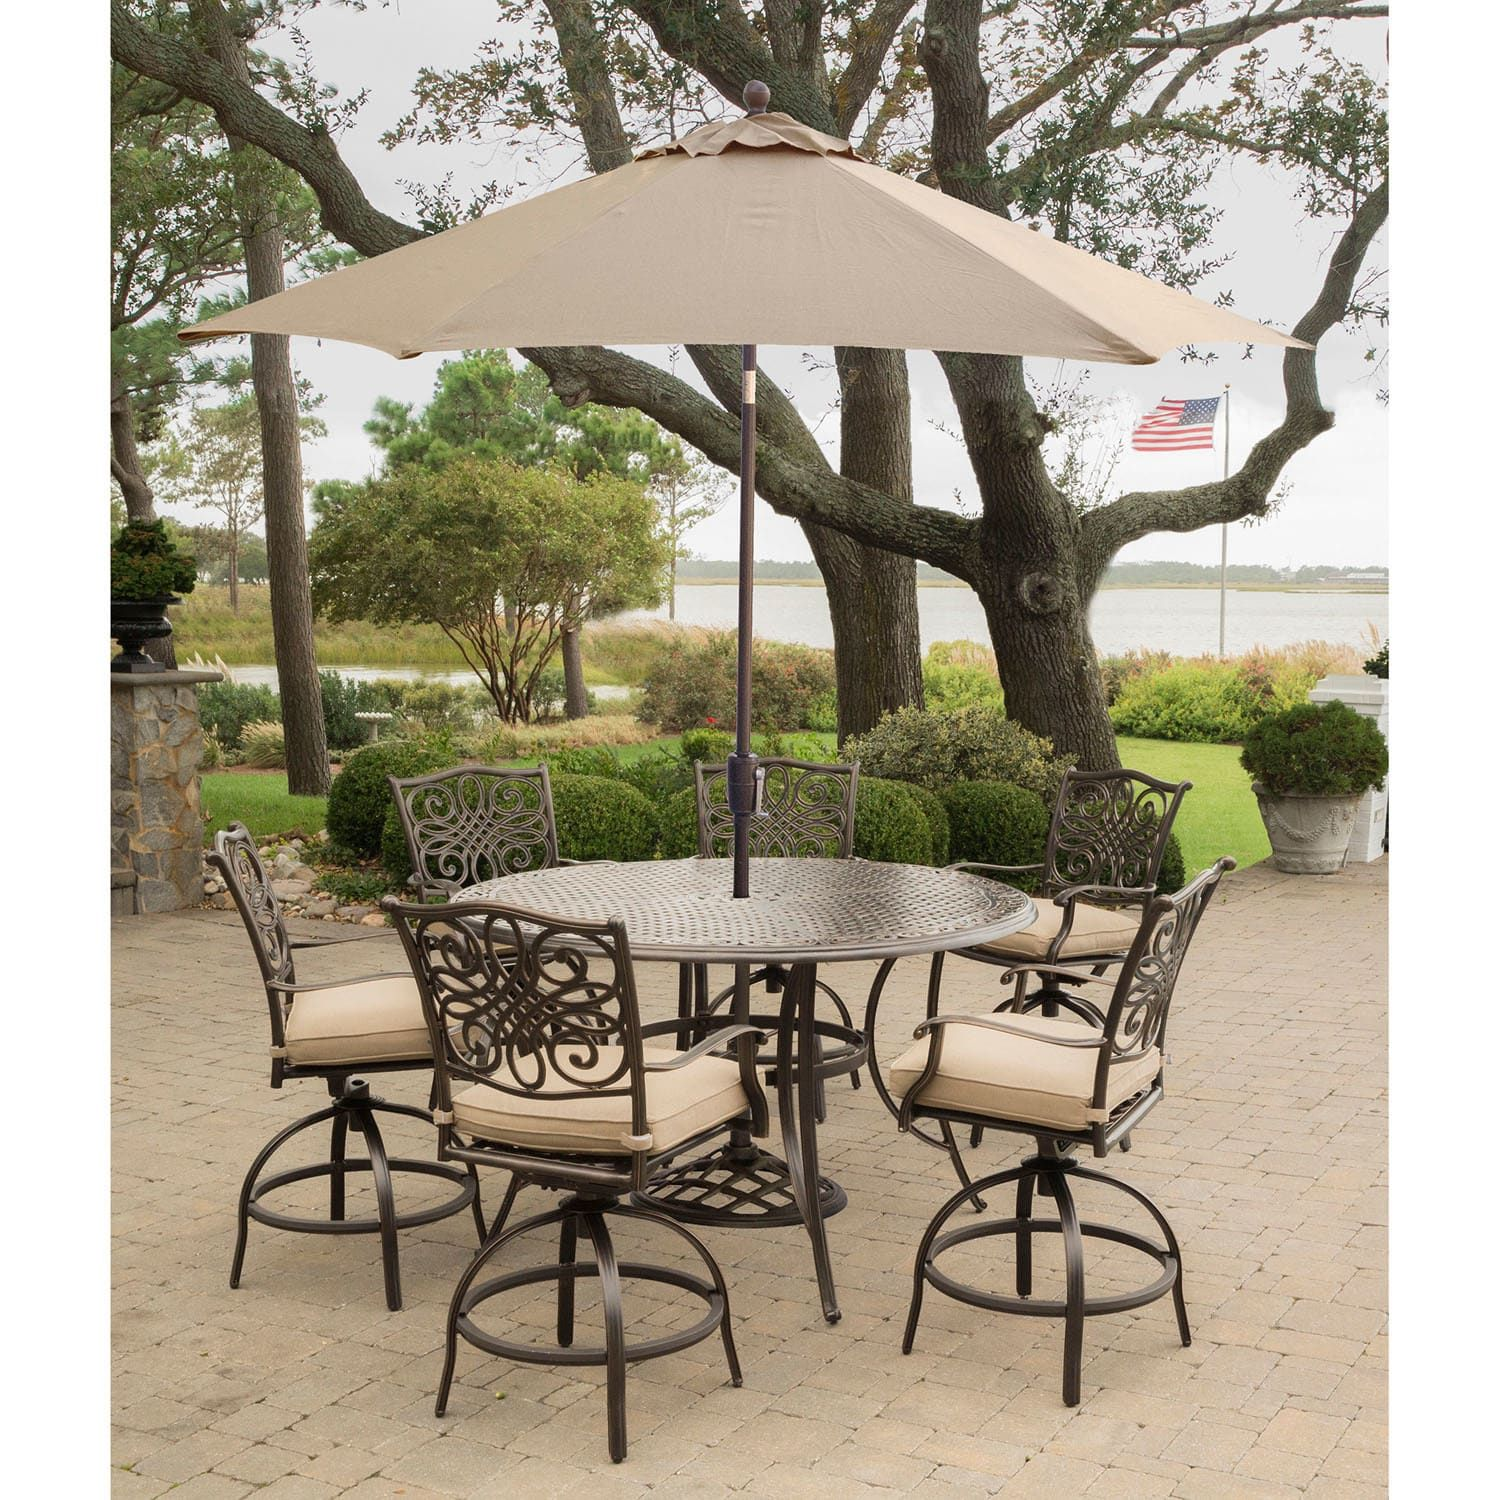 Hanover Traditions 7 Piece High Dining Bar Set in Tan with 9 Ft